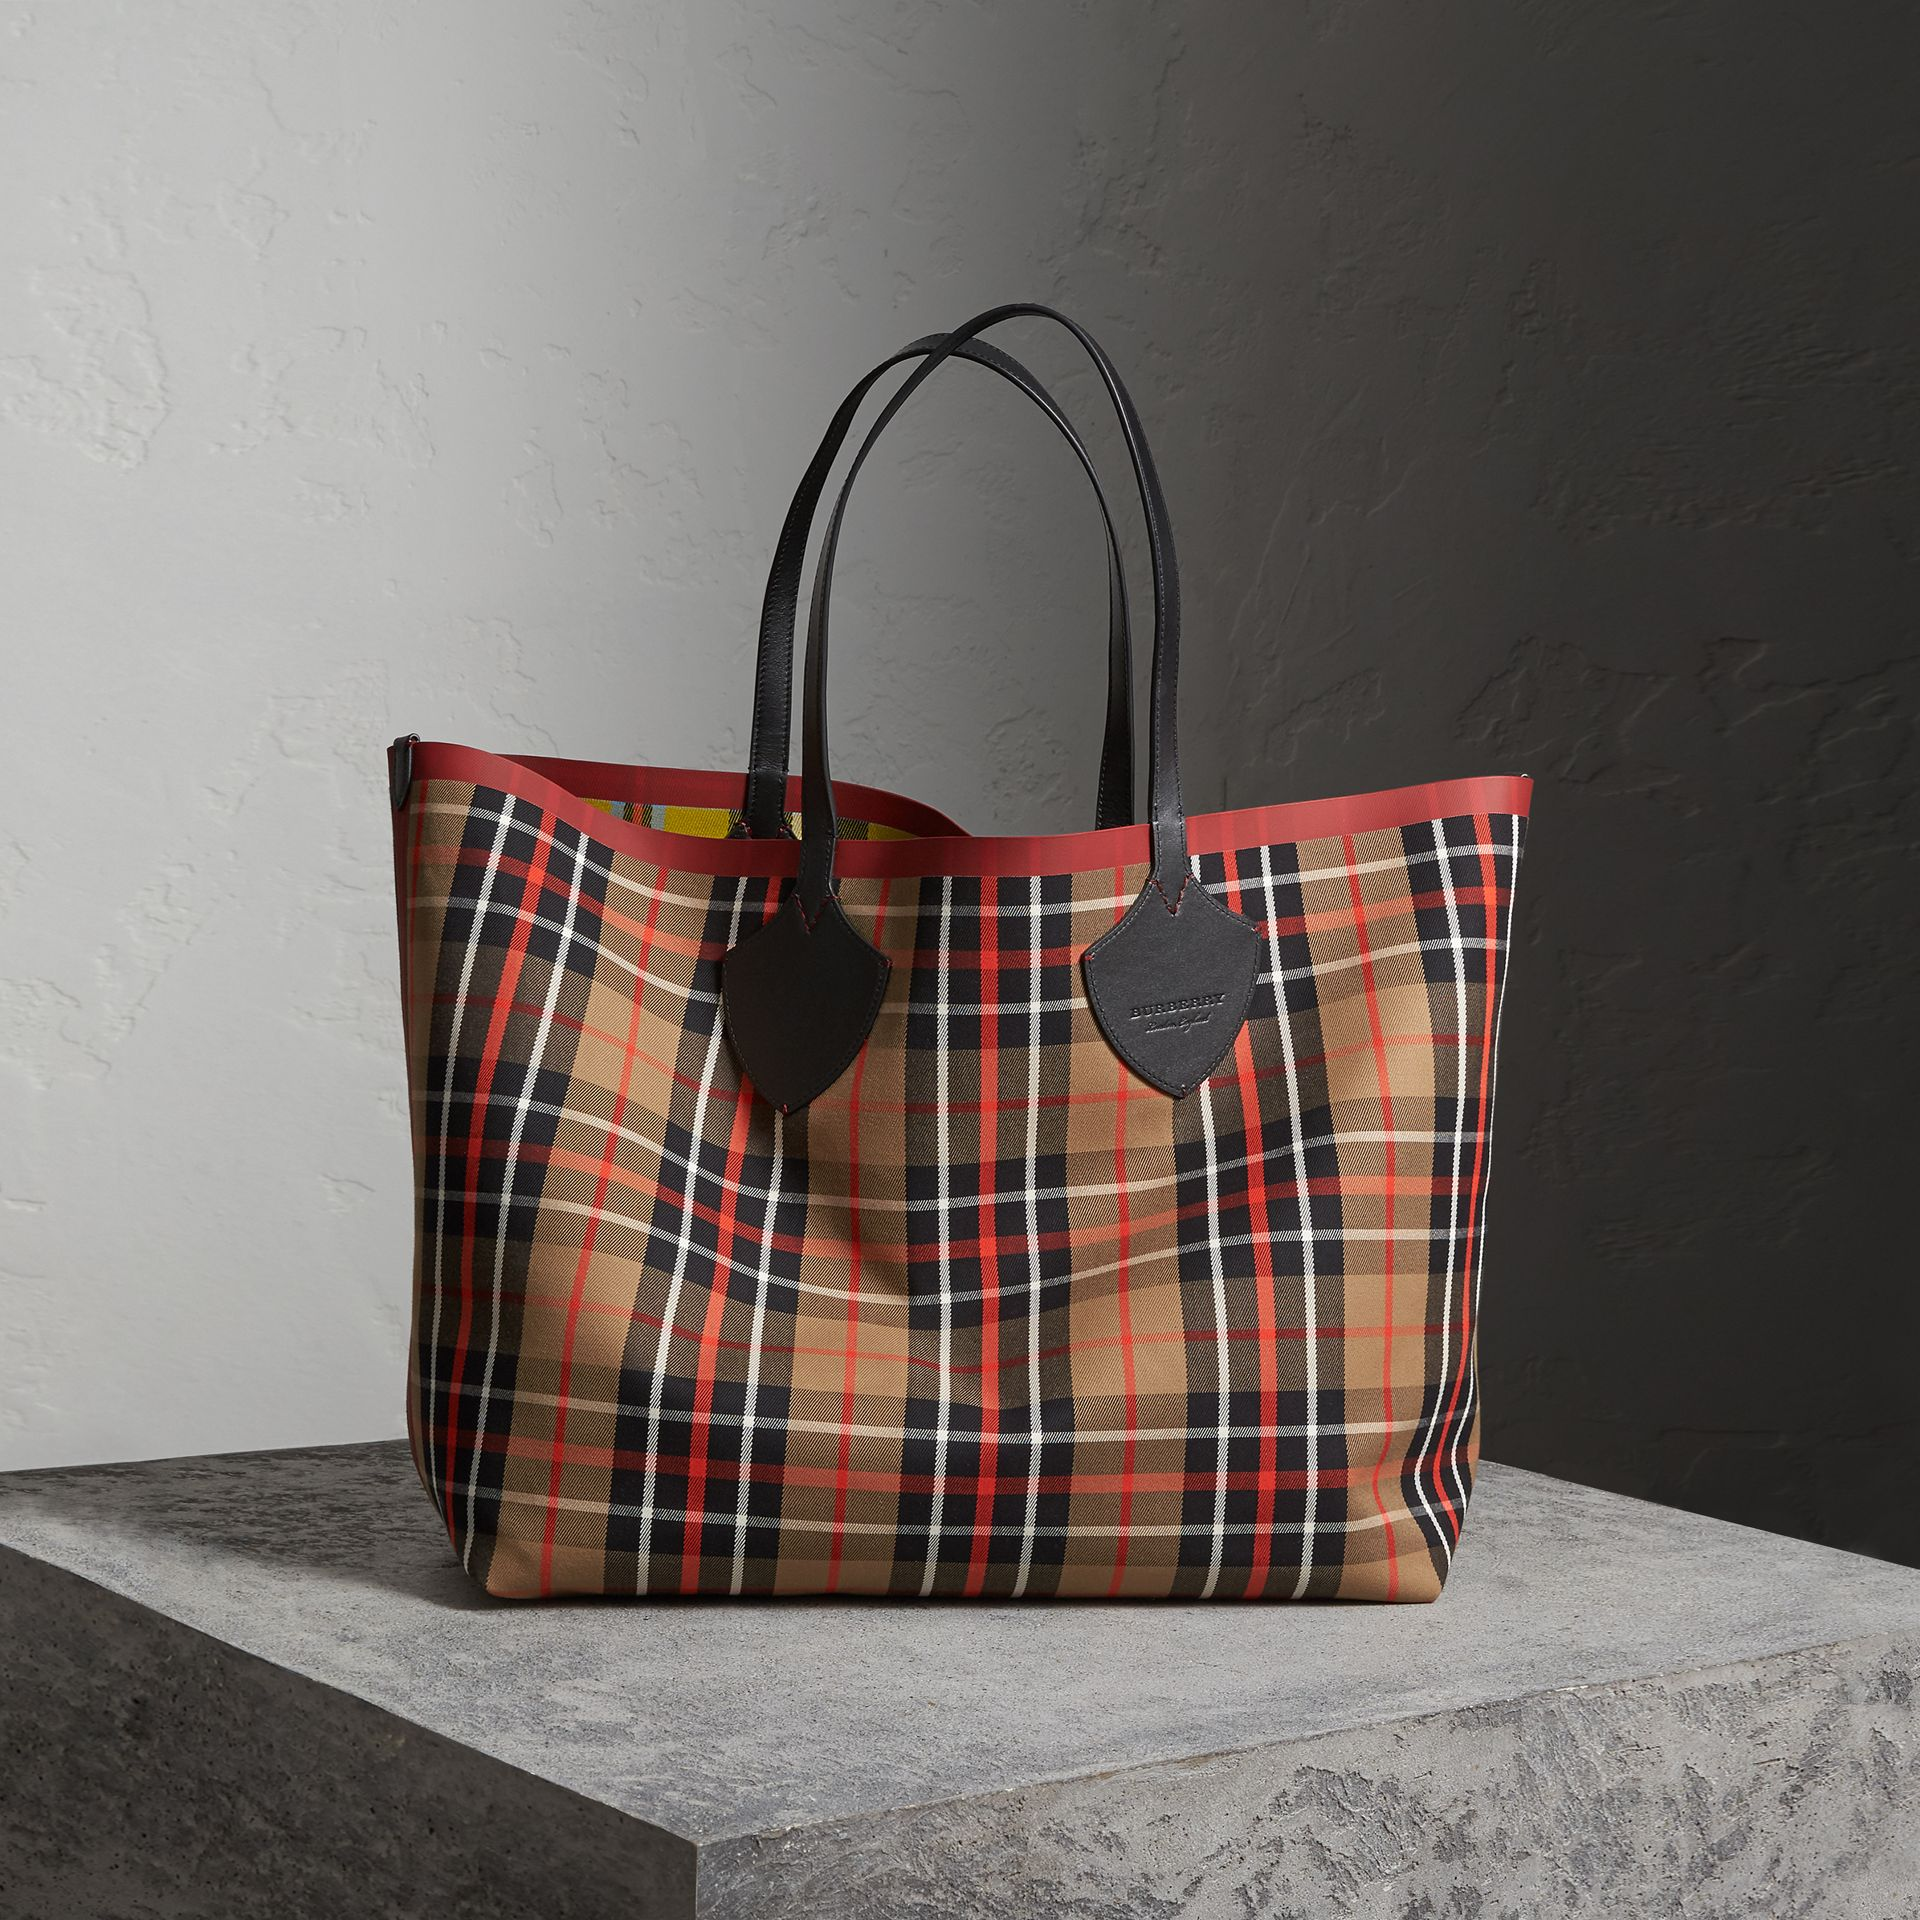 Sac tote The Giant réversible en coton tartan (Caramel/jaune Lin) | Burberry Canada - photo de la galerie 0